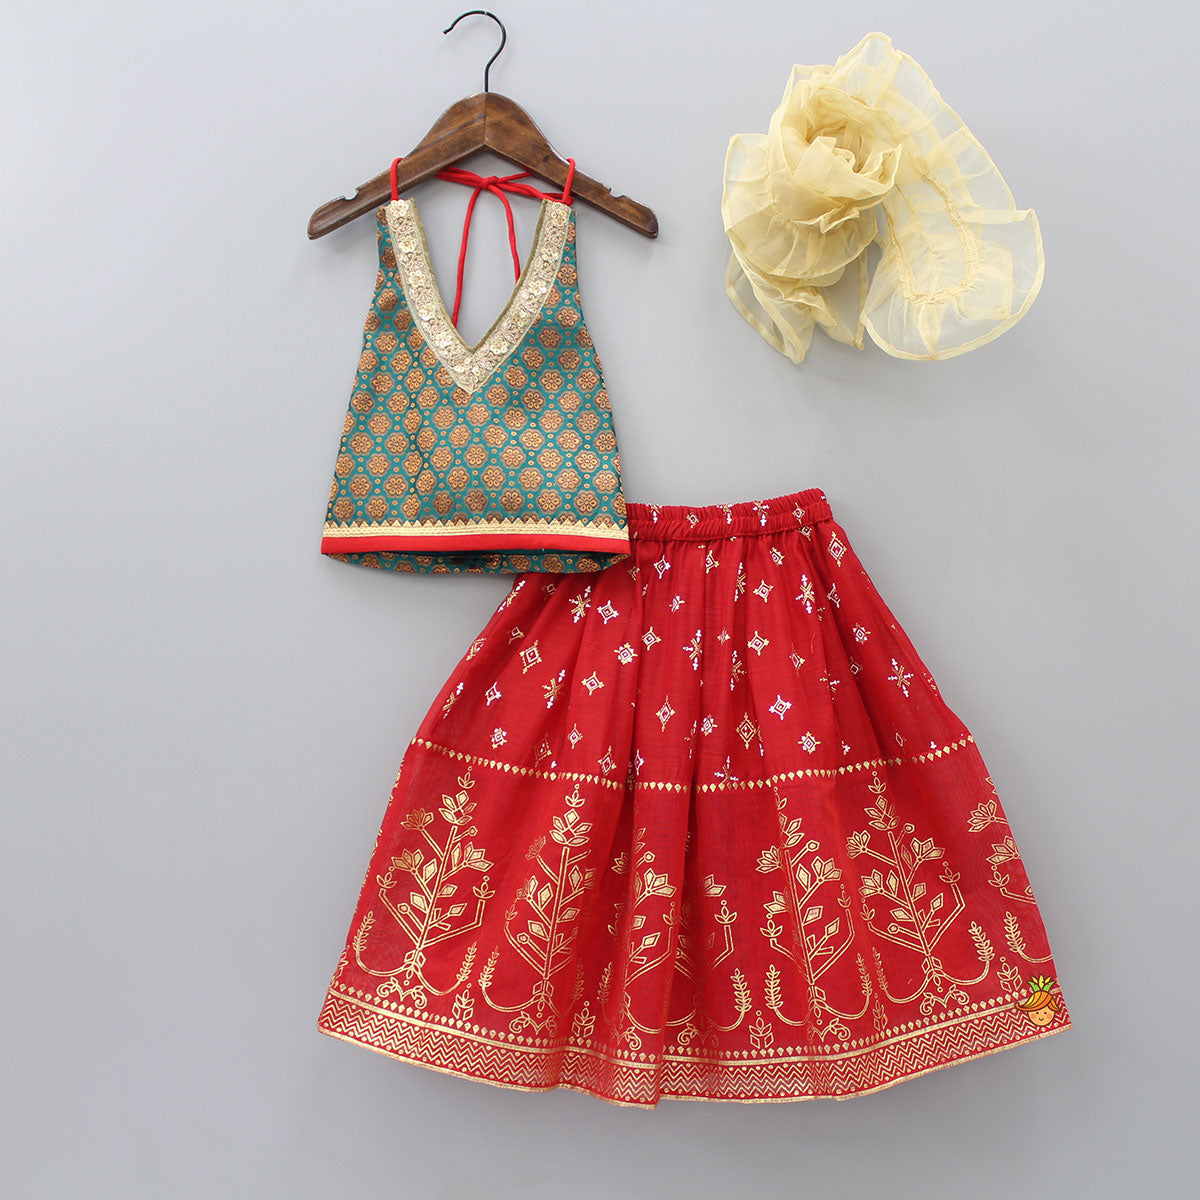 Flora Design Halter Neck Top And Lehenga With Frilly Dupatta